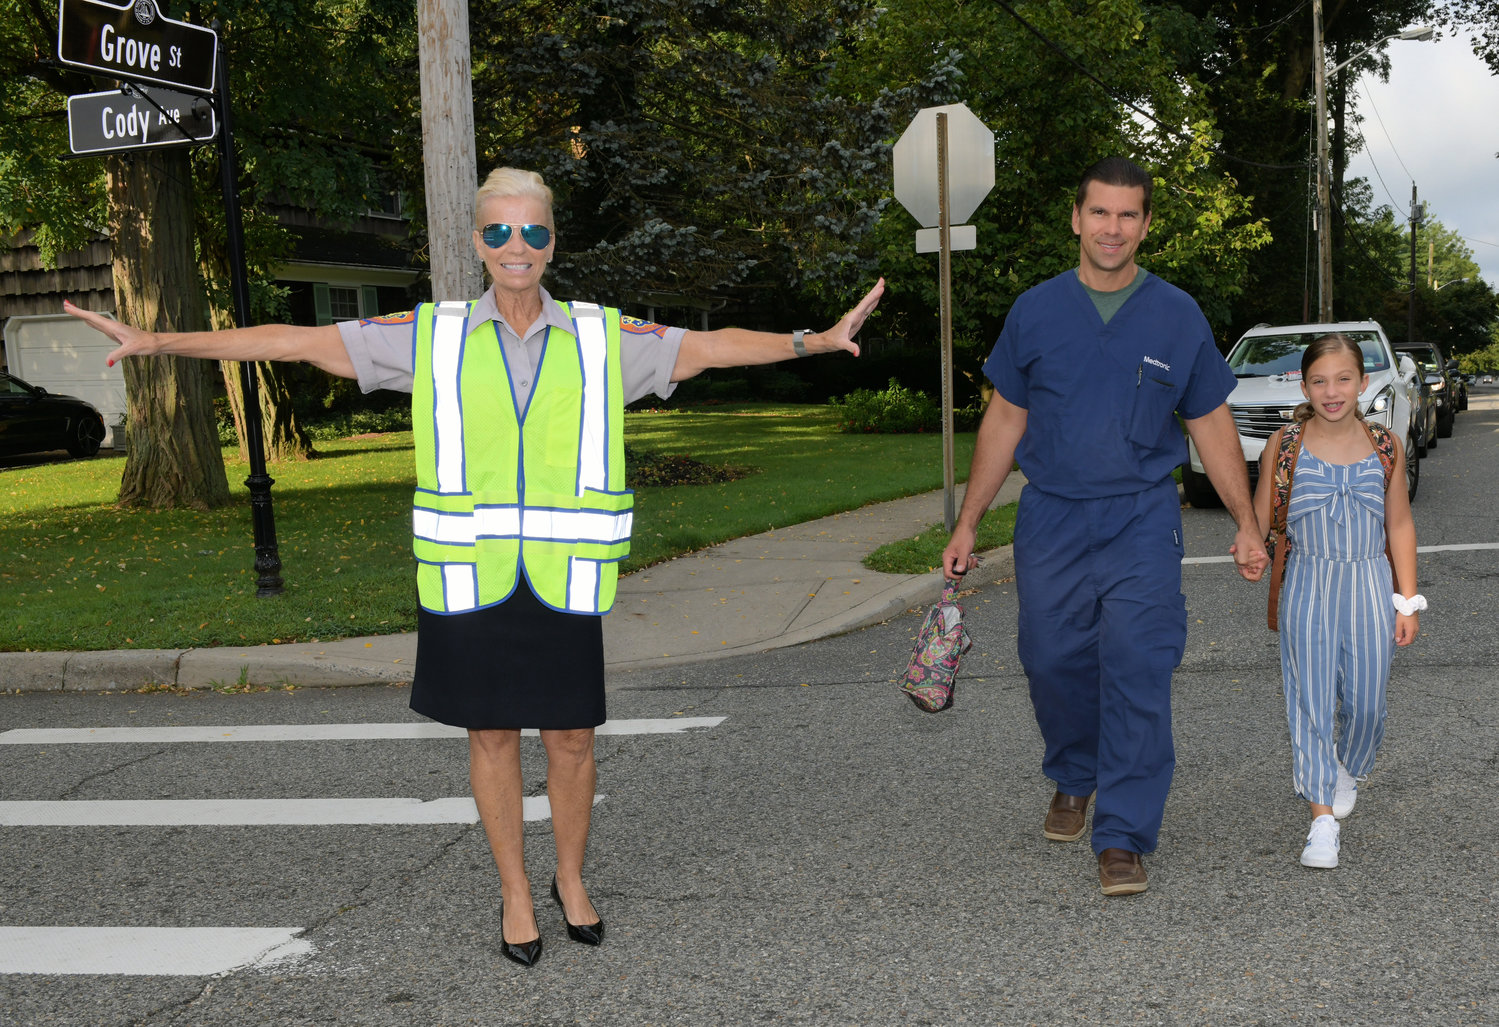 Crossing guard Mili Zilinski, helped Boz and Noreen Alissa cross the street on the way to school.